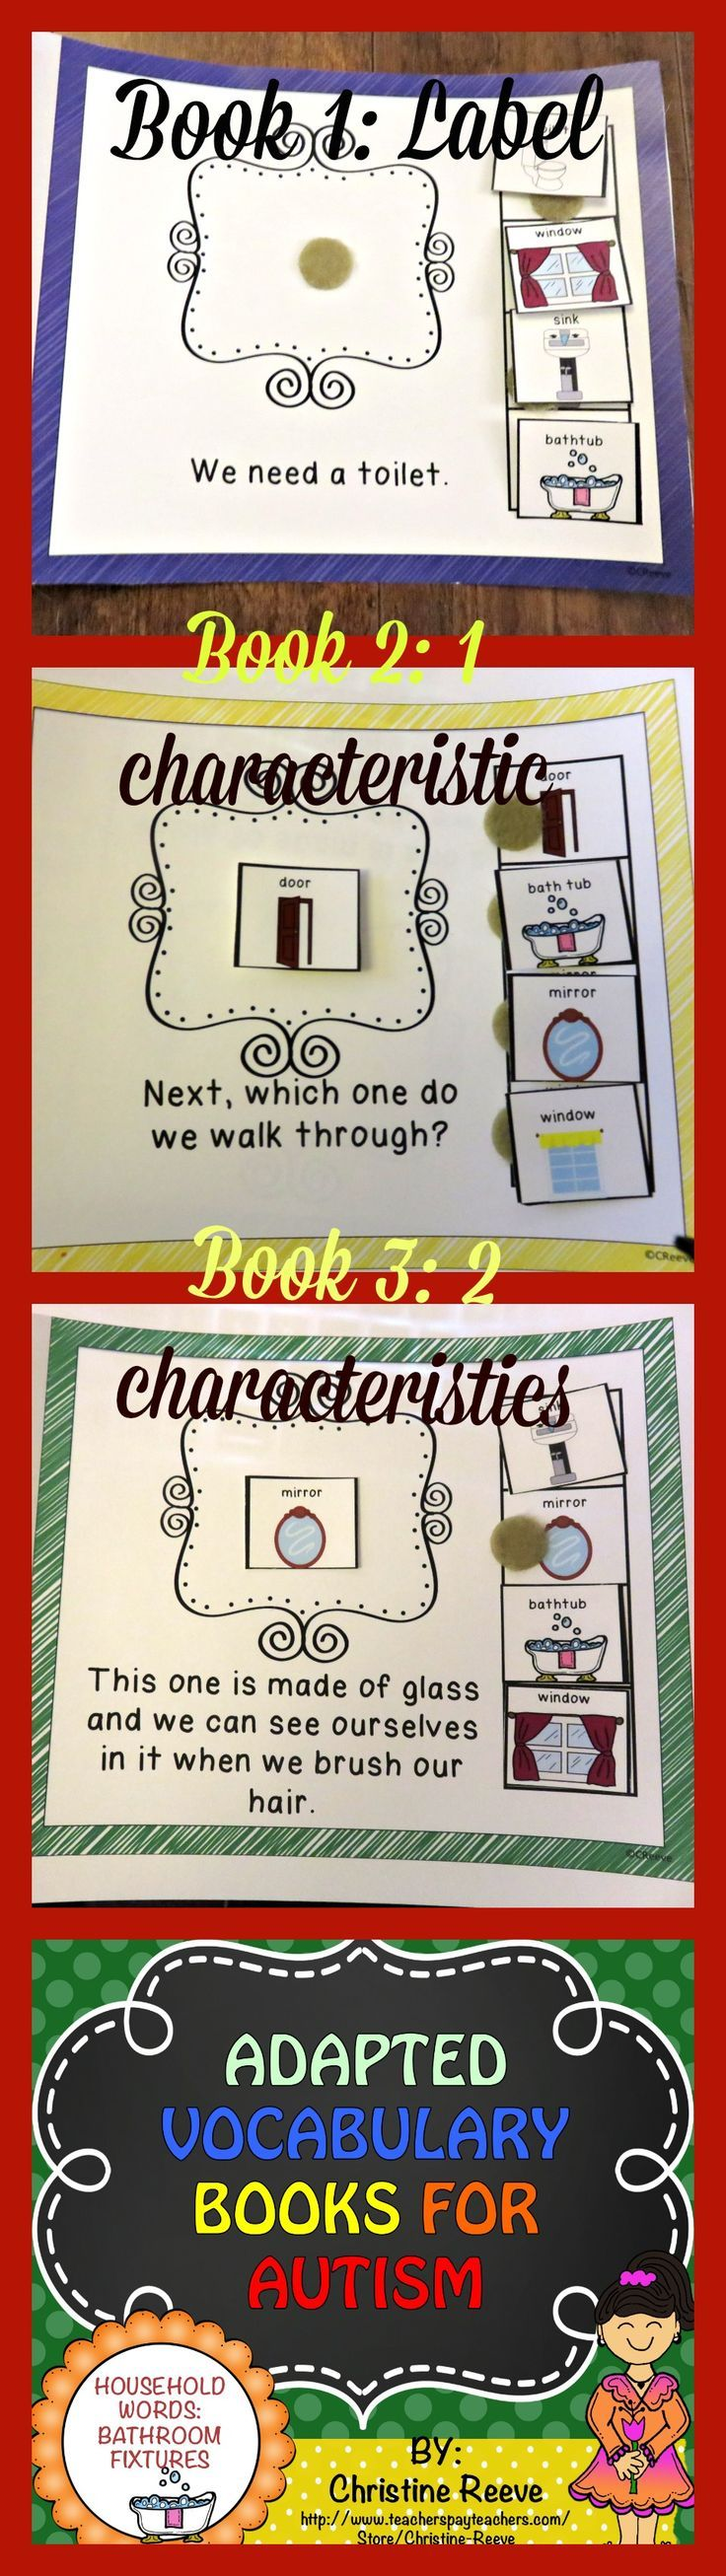 Teaching Reading and Spelling to Autistic Children—6 Great ...